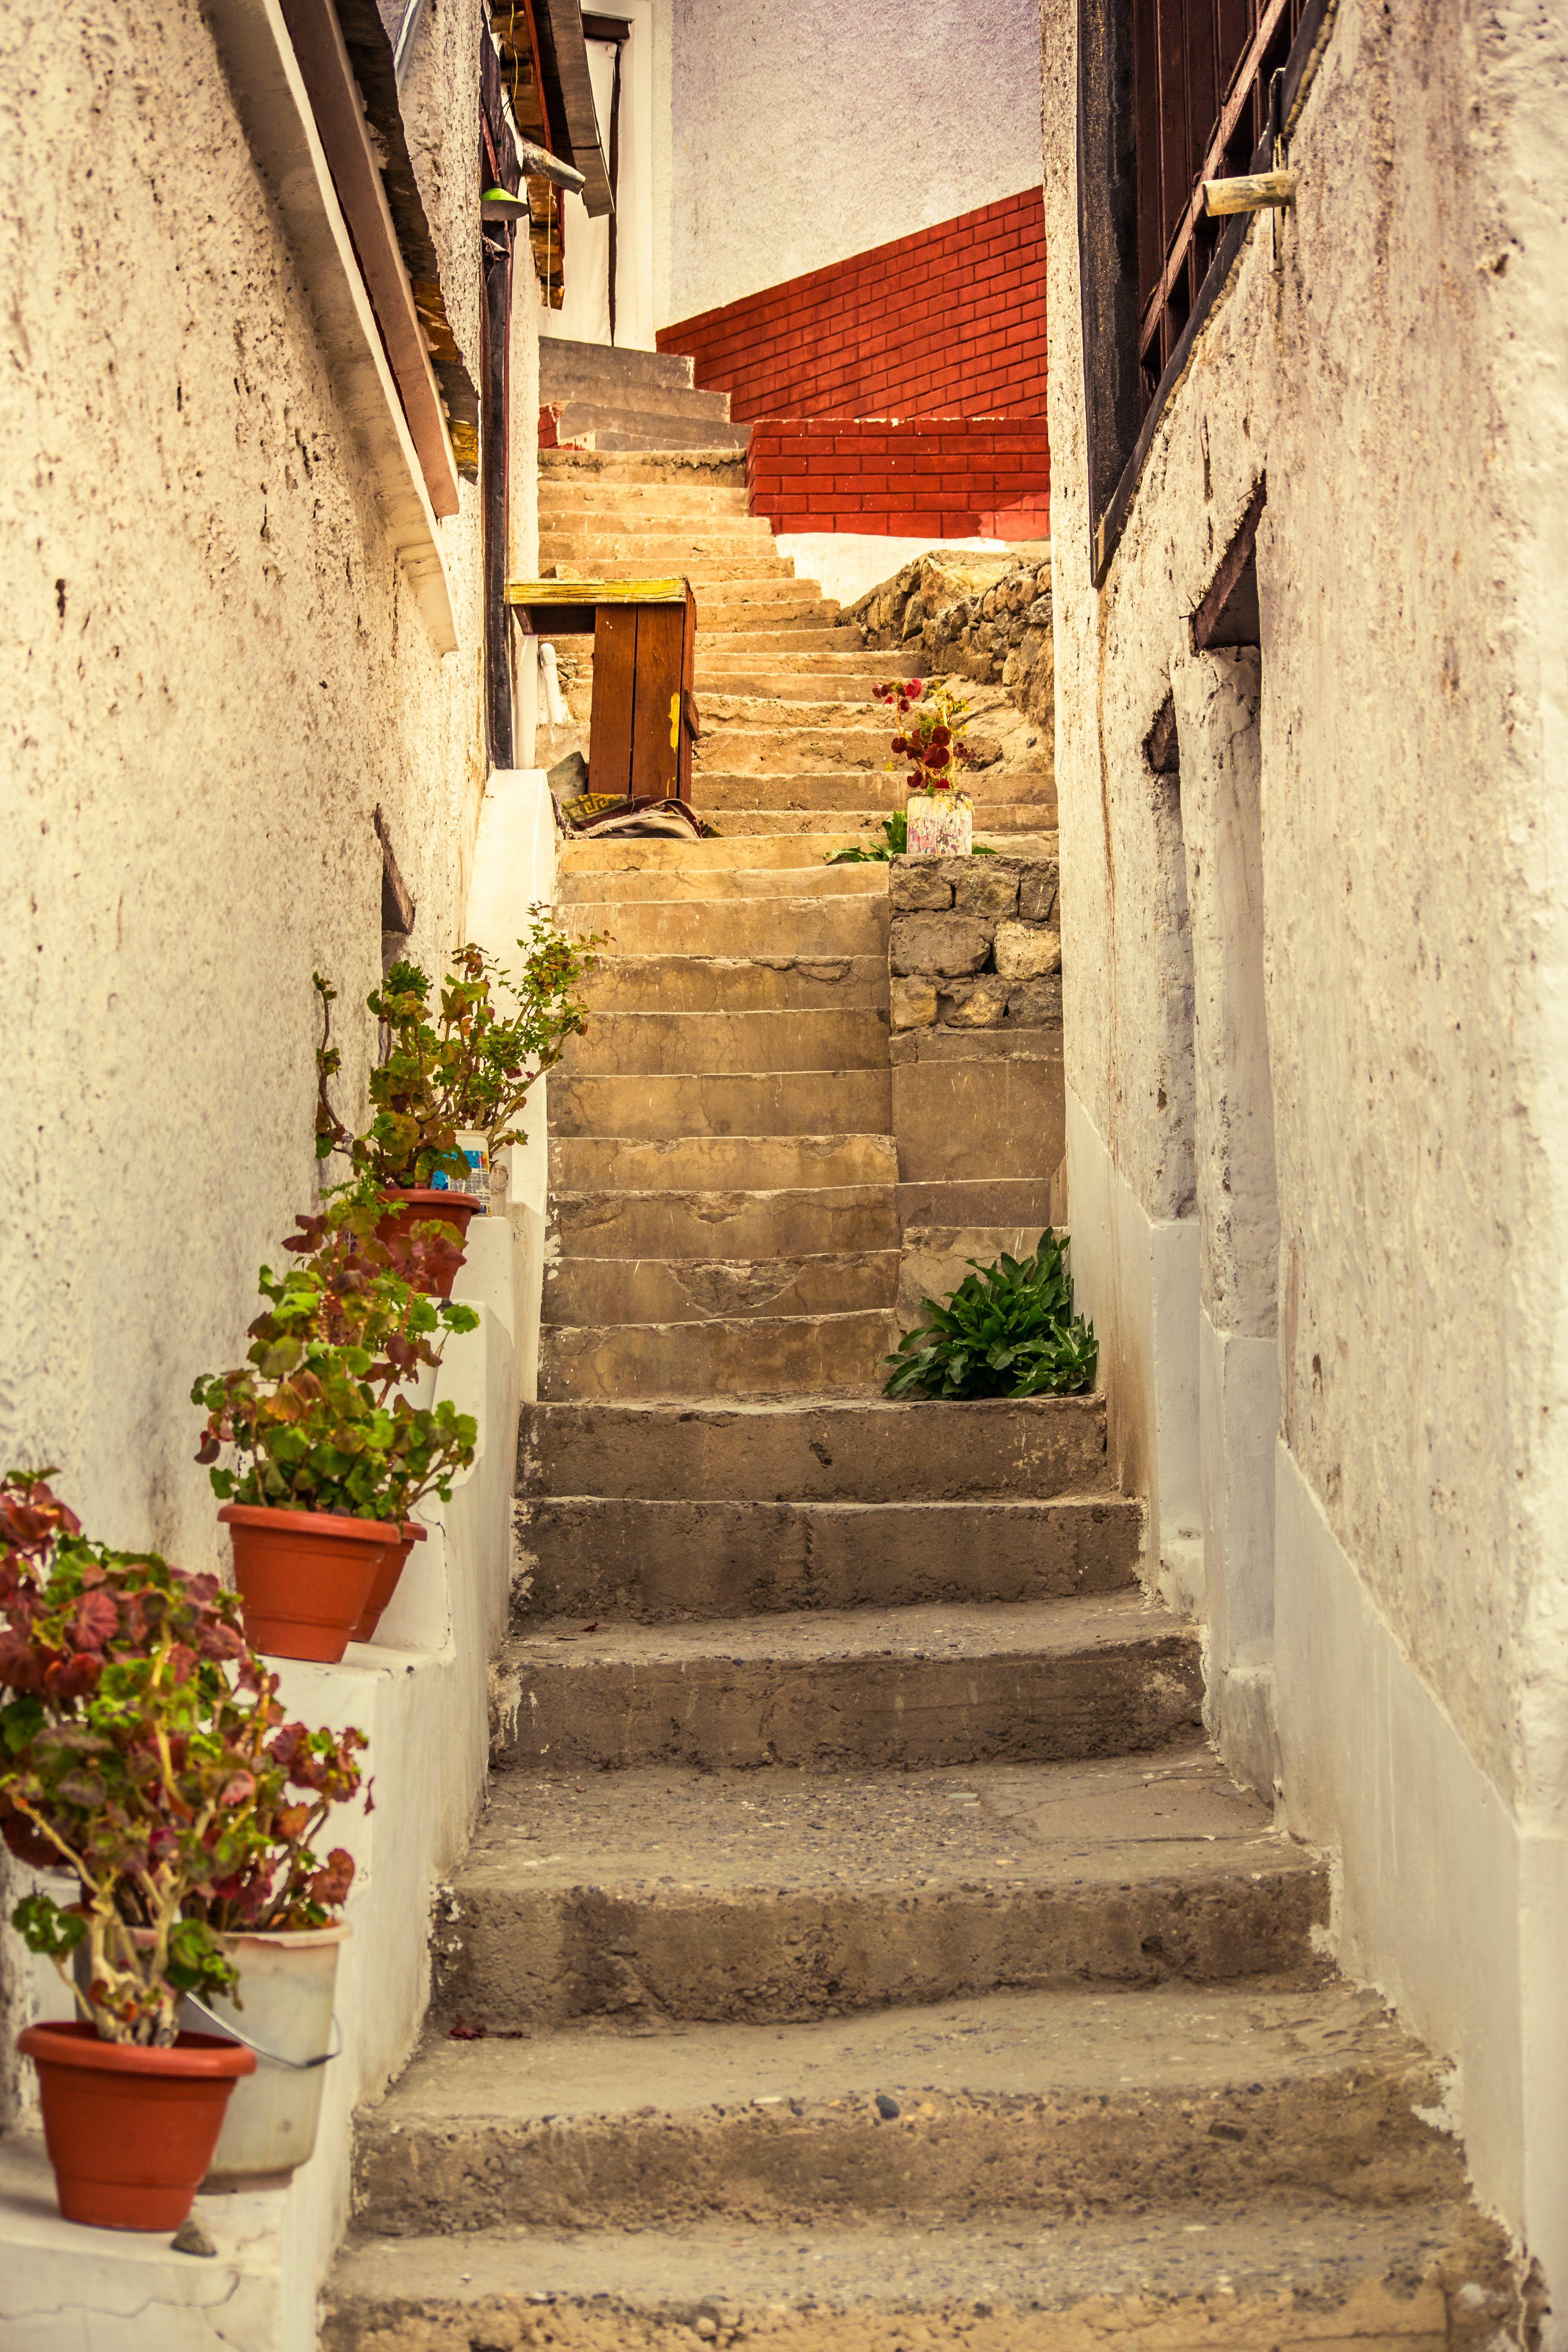 Free stock photo of stairs, steps, way, alley